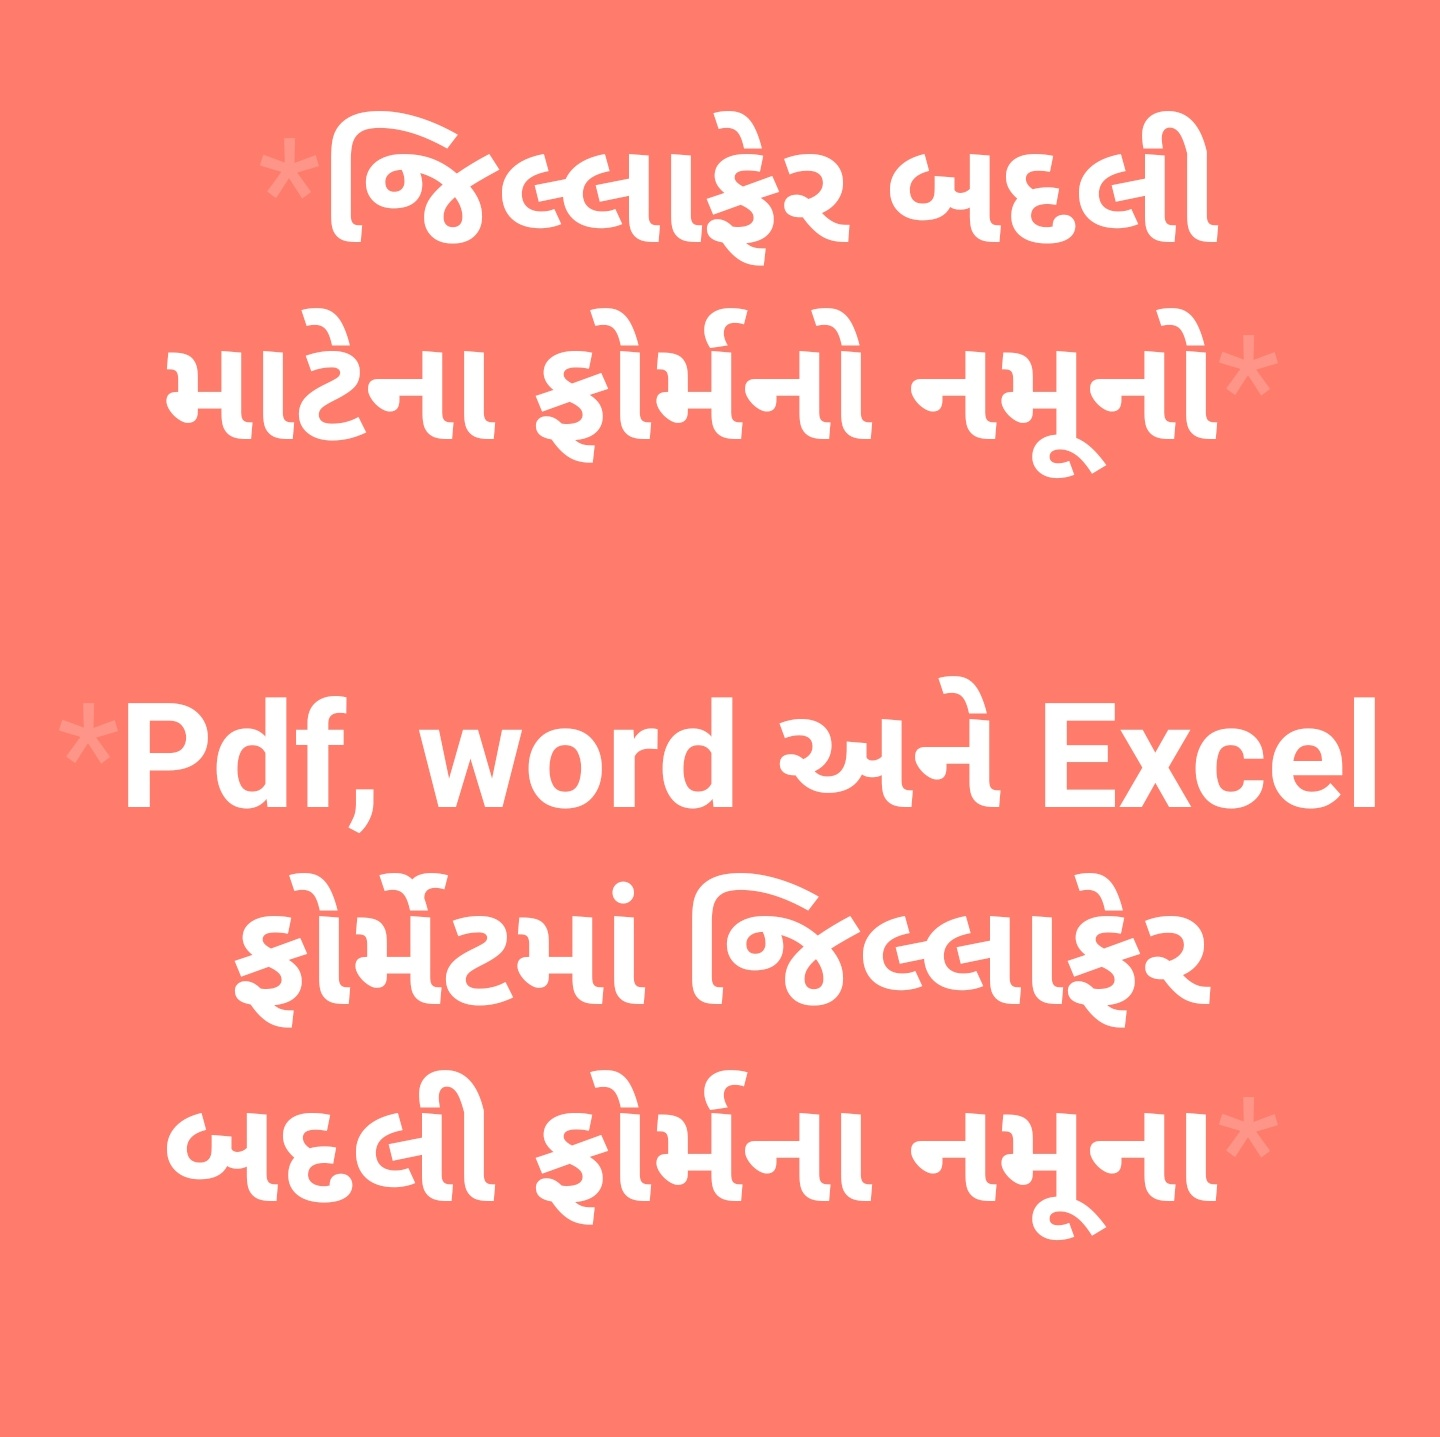 Jillafer-Badli-Form-Word-pdf-Excel-gujarat-job-portel